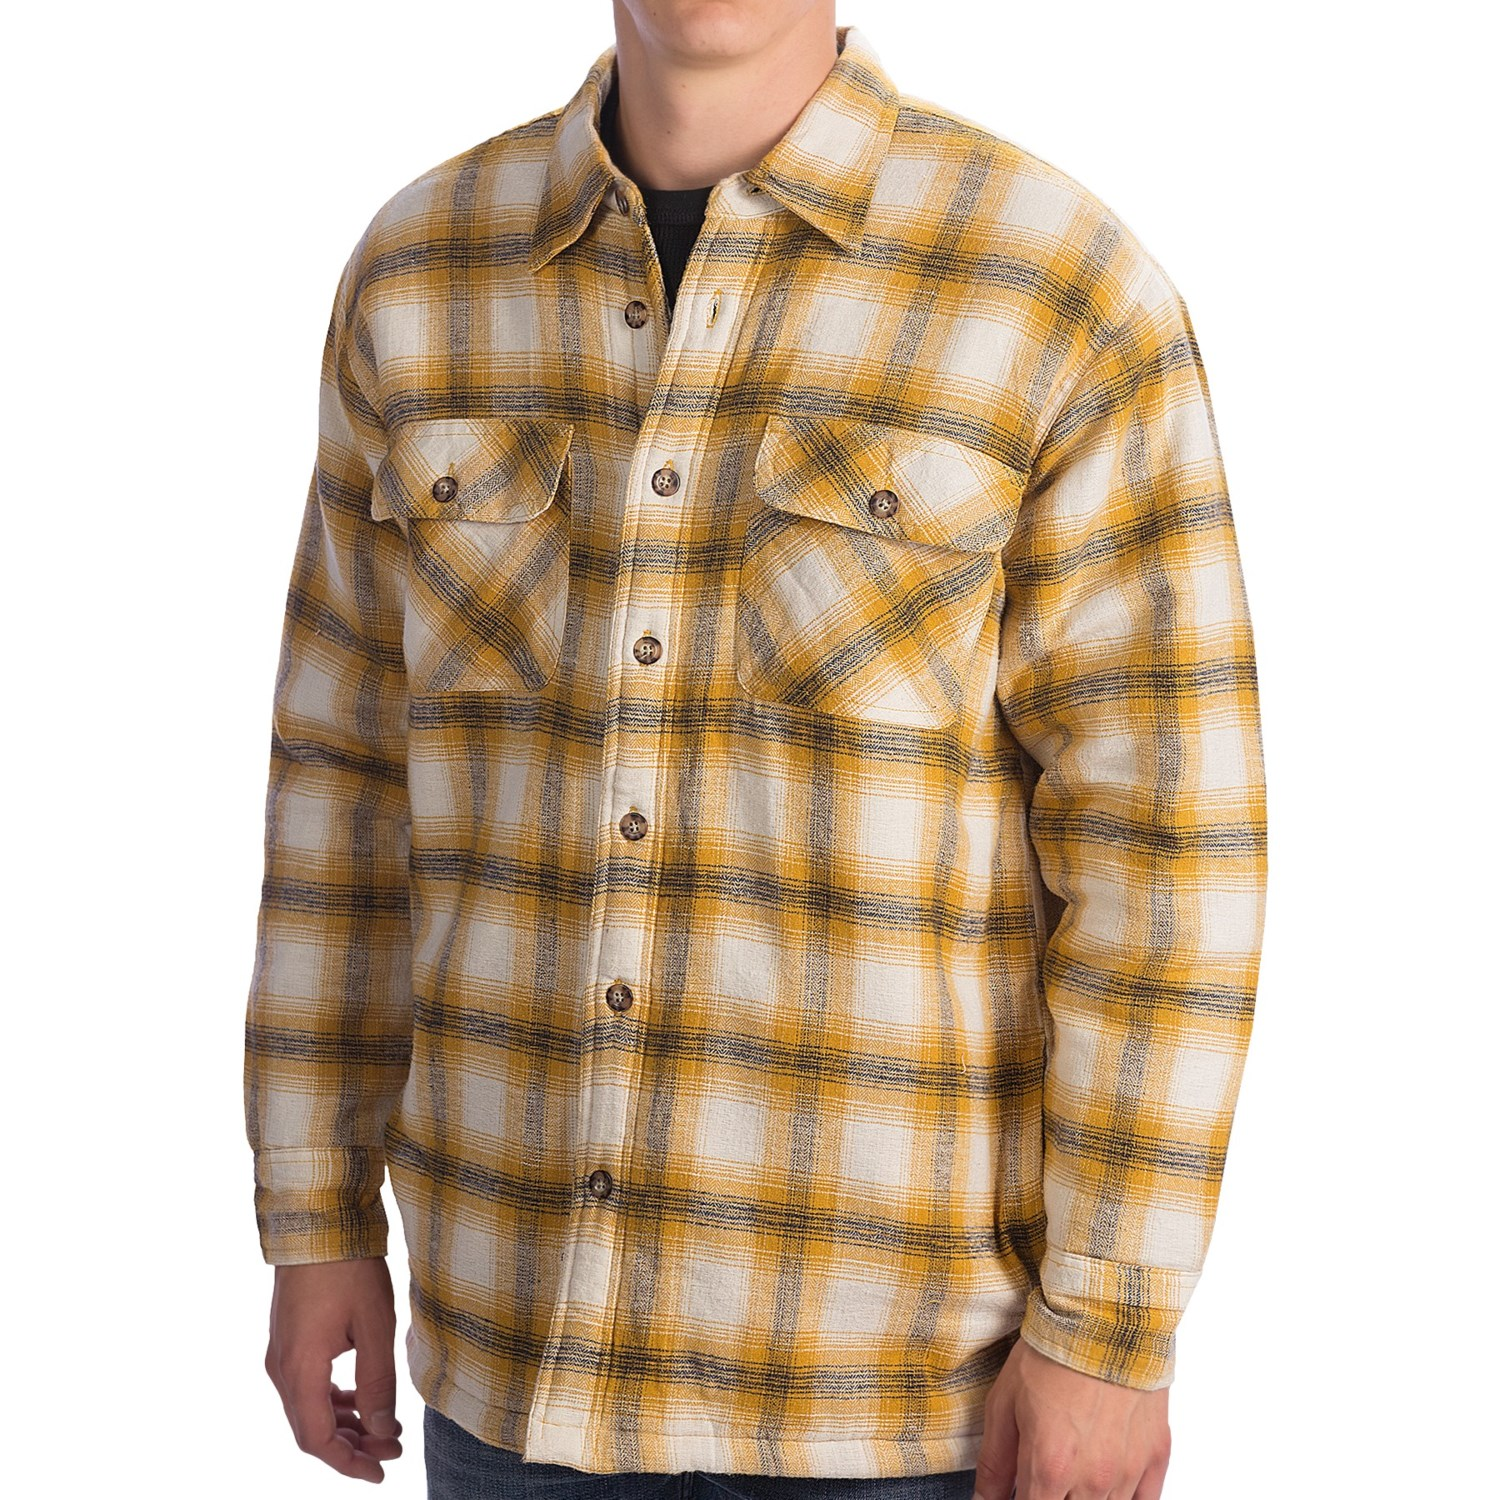 Jemcor Flannel Jackets. invalid category id. Jemcor Flannel Jackets. Product - North End Ash City Men's Elasticized Cuffs Zipper Lightweight Jacket. Product Image. Price $ Product Title. Marketplace items (products not sold by truemfilesb5q.gq).